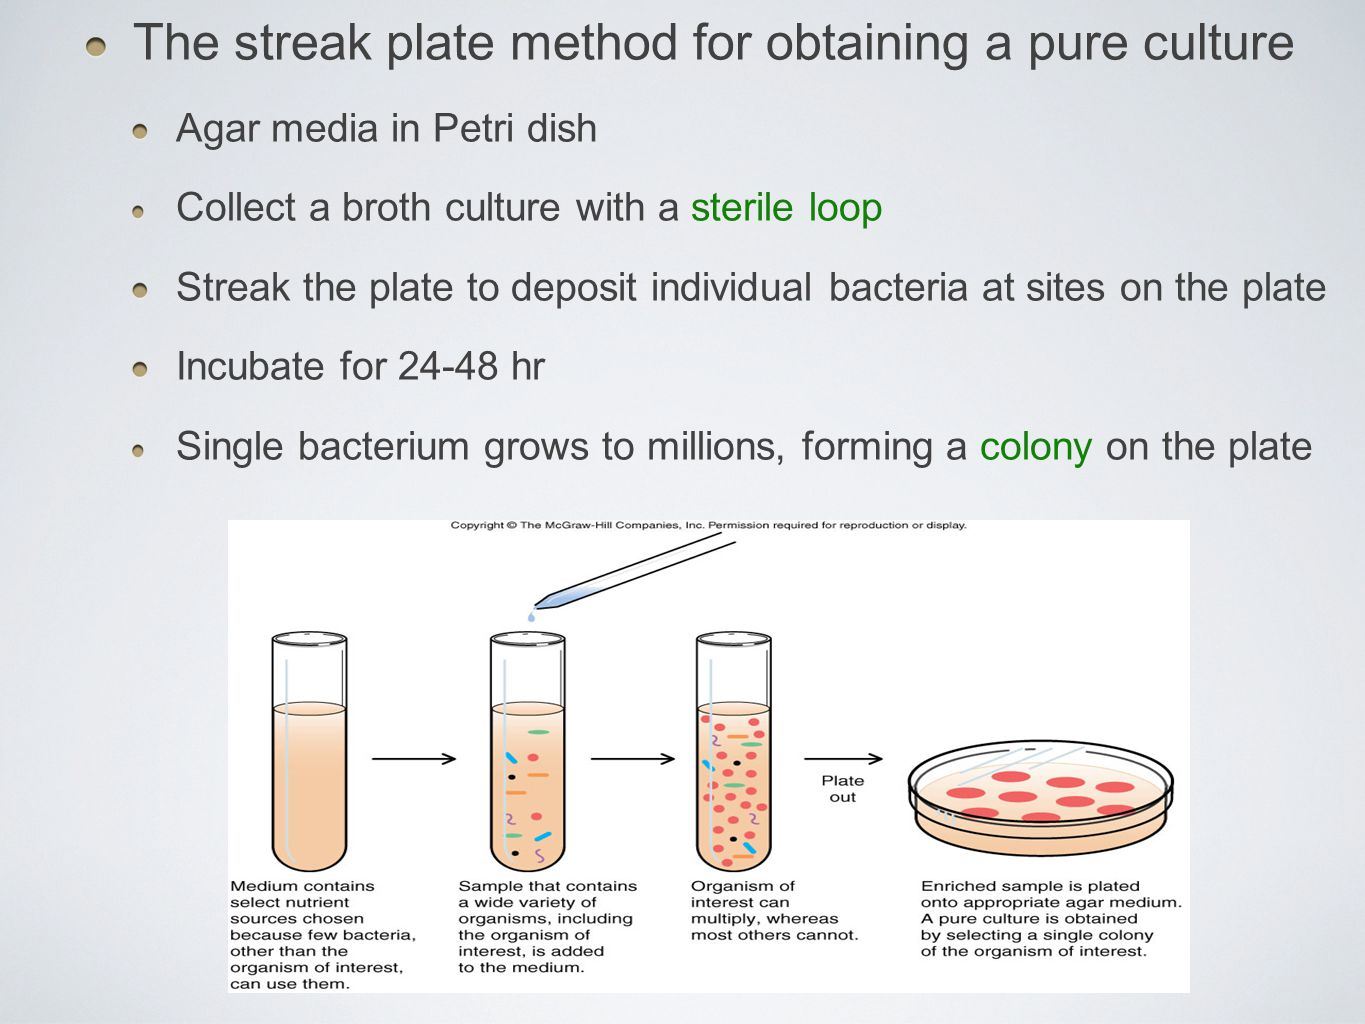 The streak plate method for obtaining a pure culture